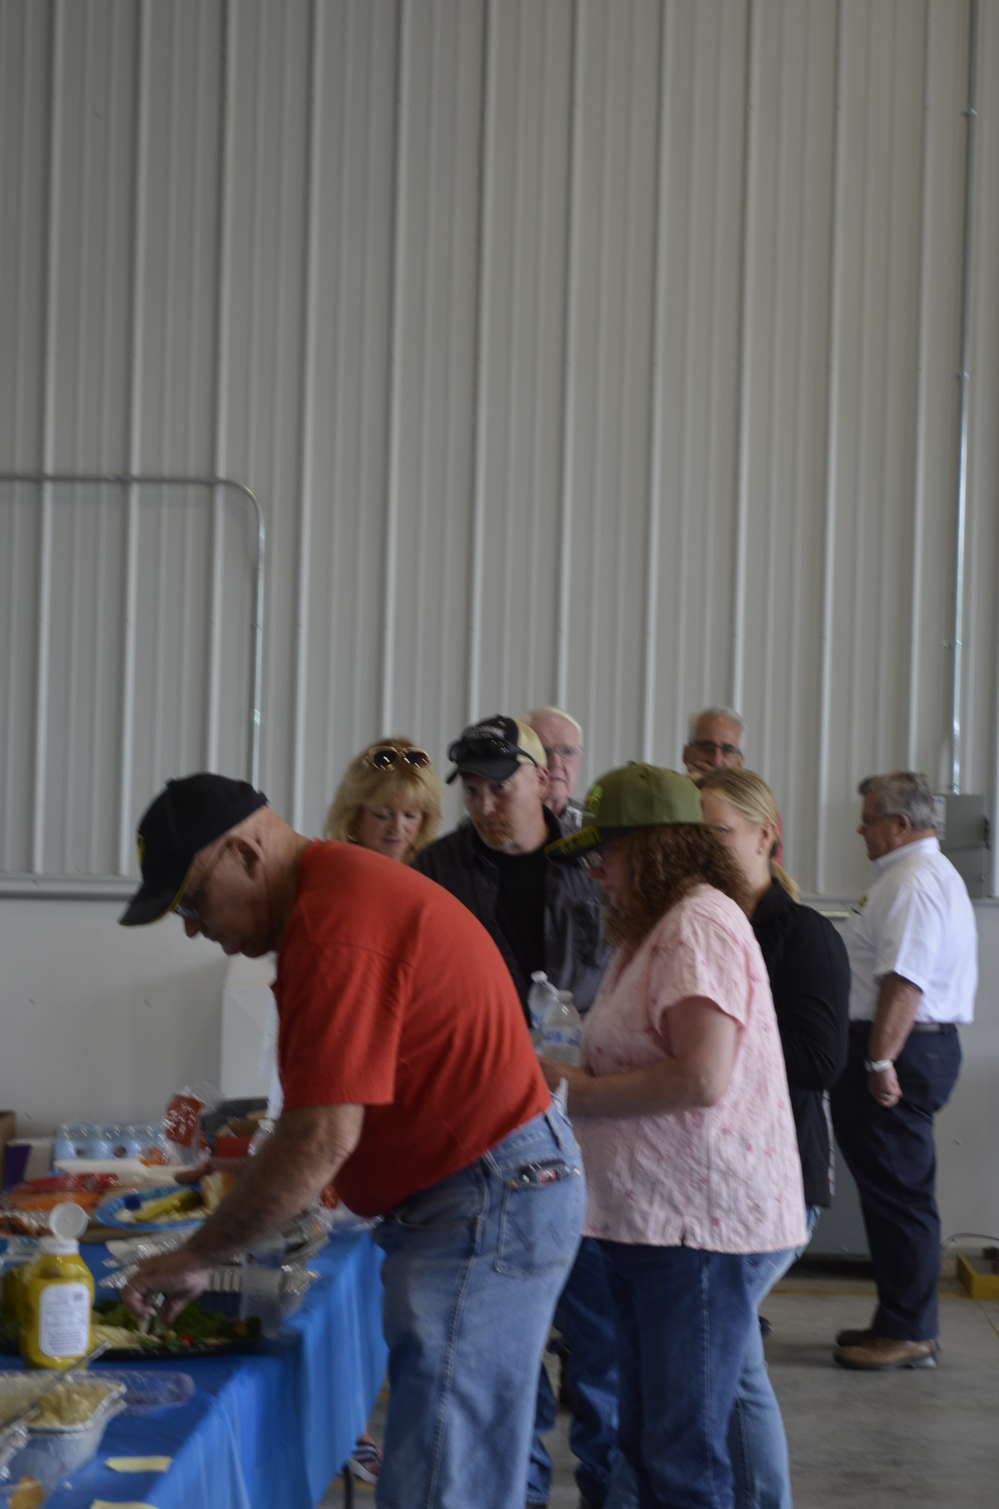 A barbecue lunch was provided to Rifenburg vendors, employees and their families.